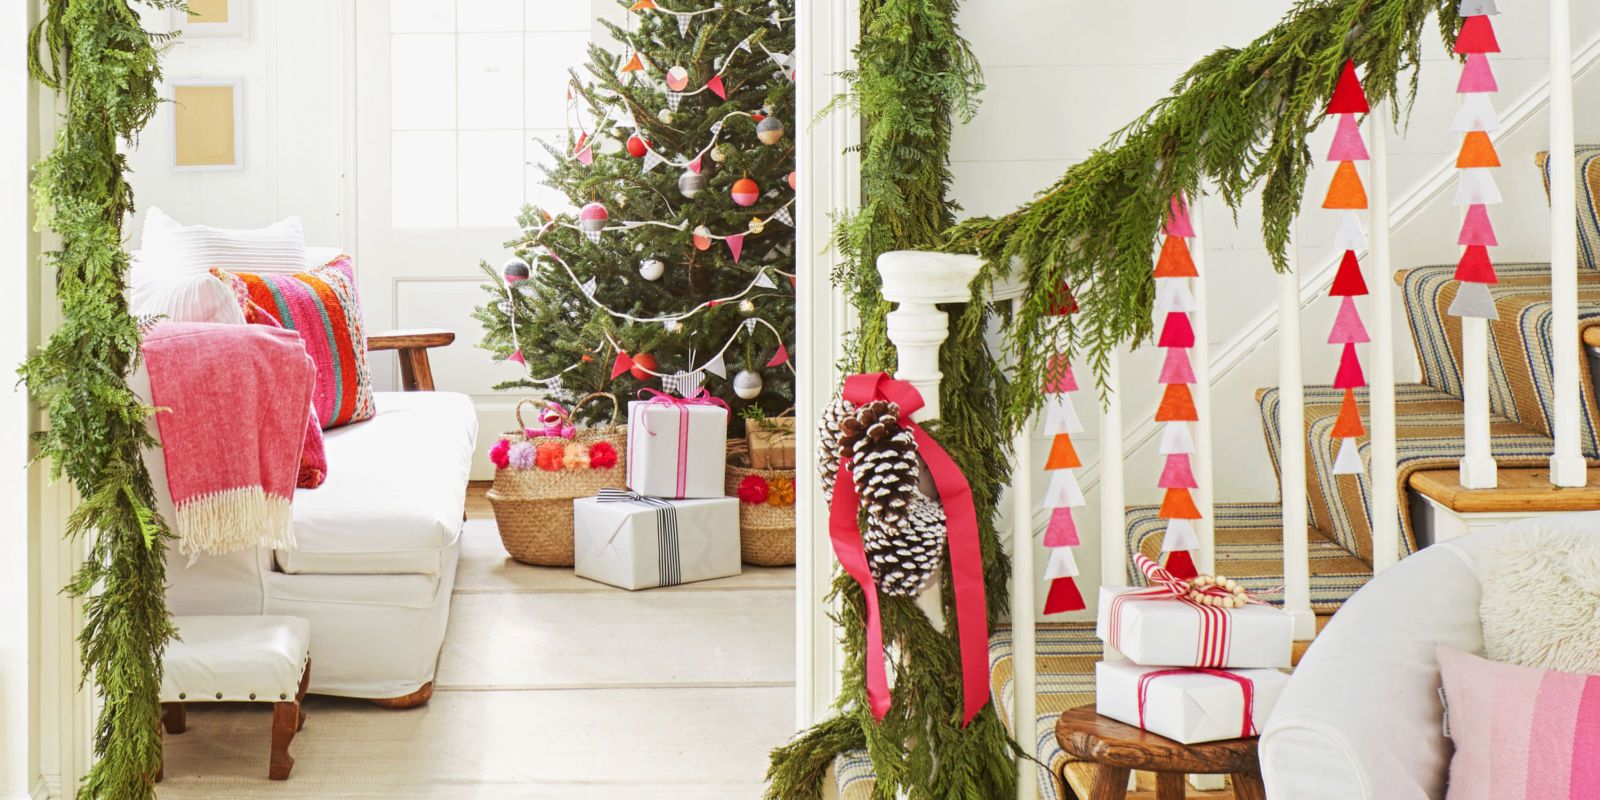 80 DIY Christmas Decorations - Easy Christmas Decorating Ideas